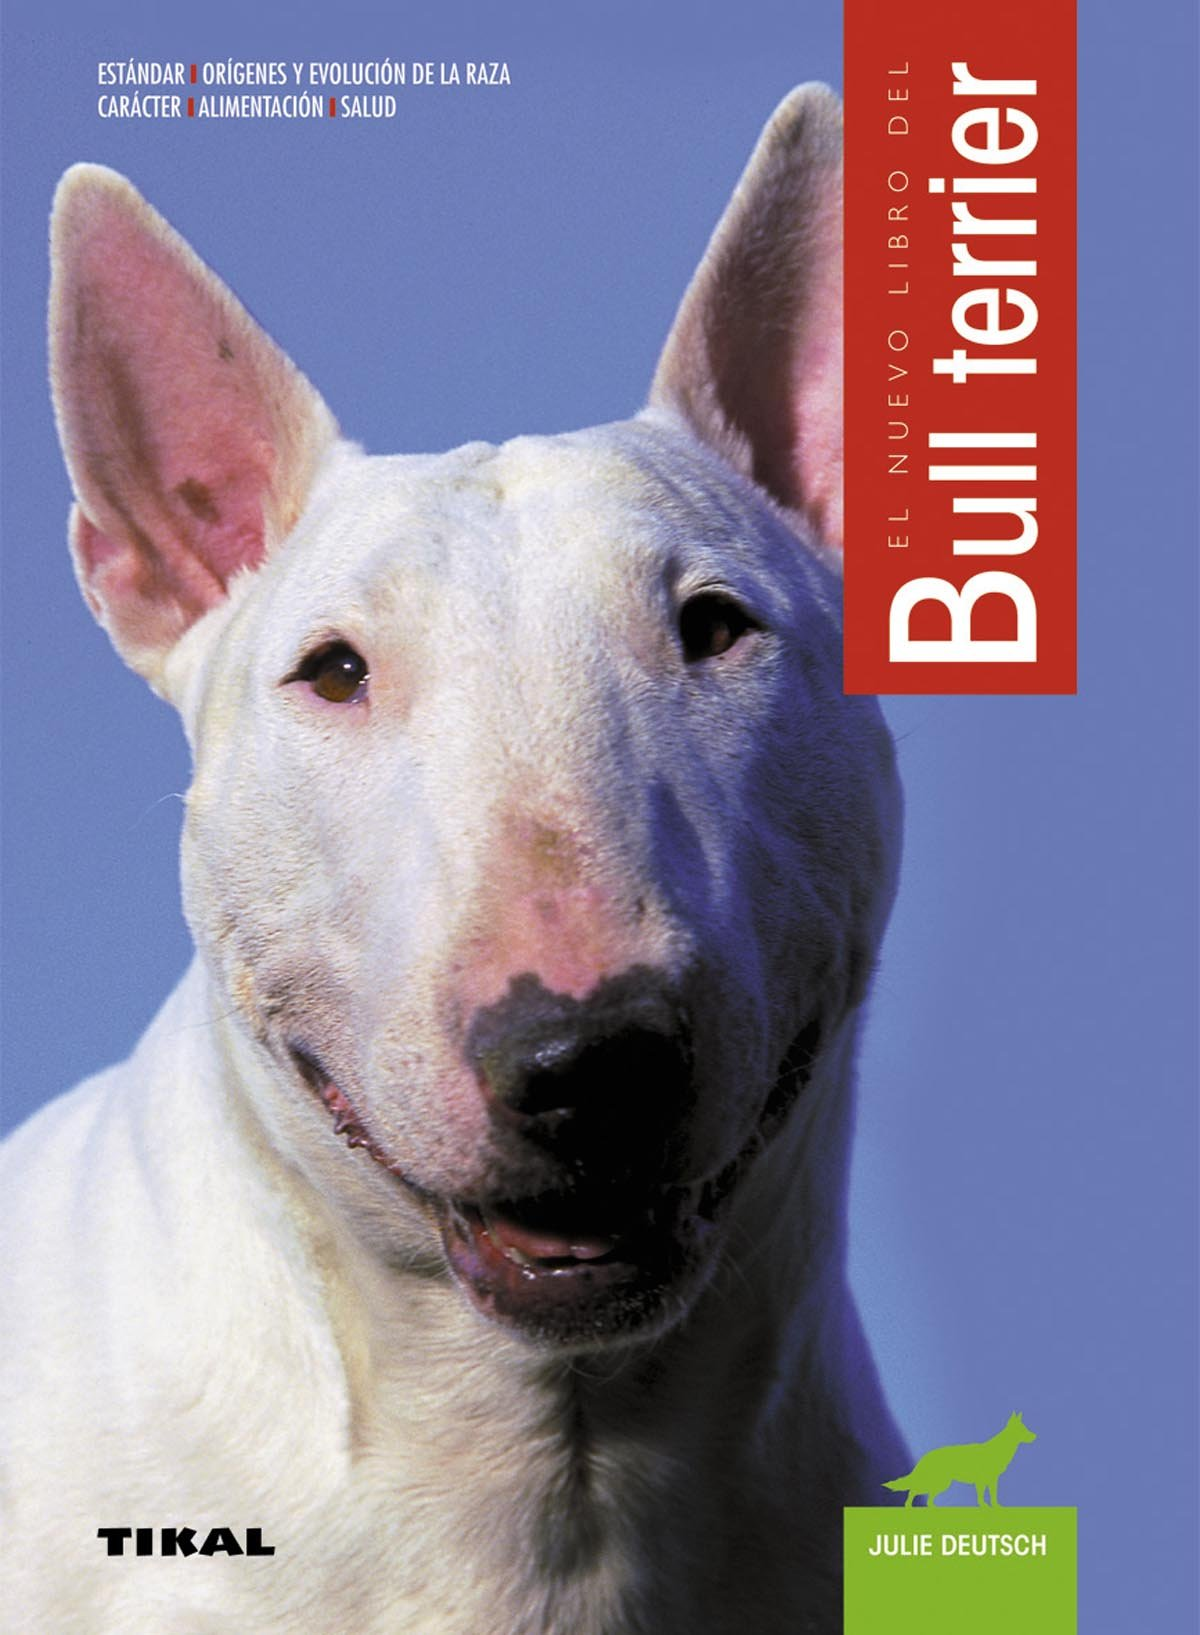 Bull Terrier (Spanish Edition): Julie Deutsch: 9788430547593: Amazon.com: Books